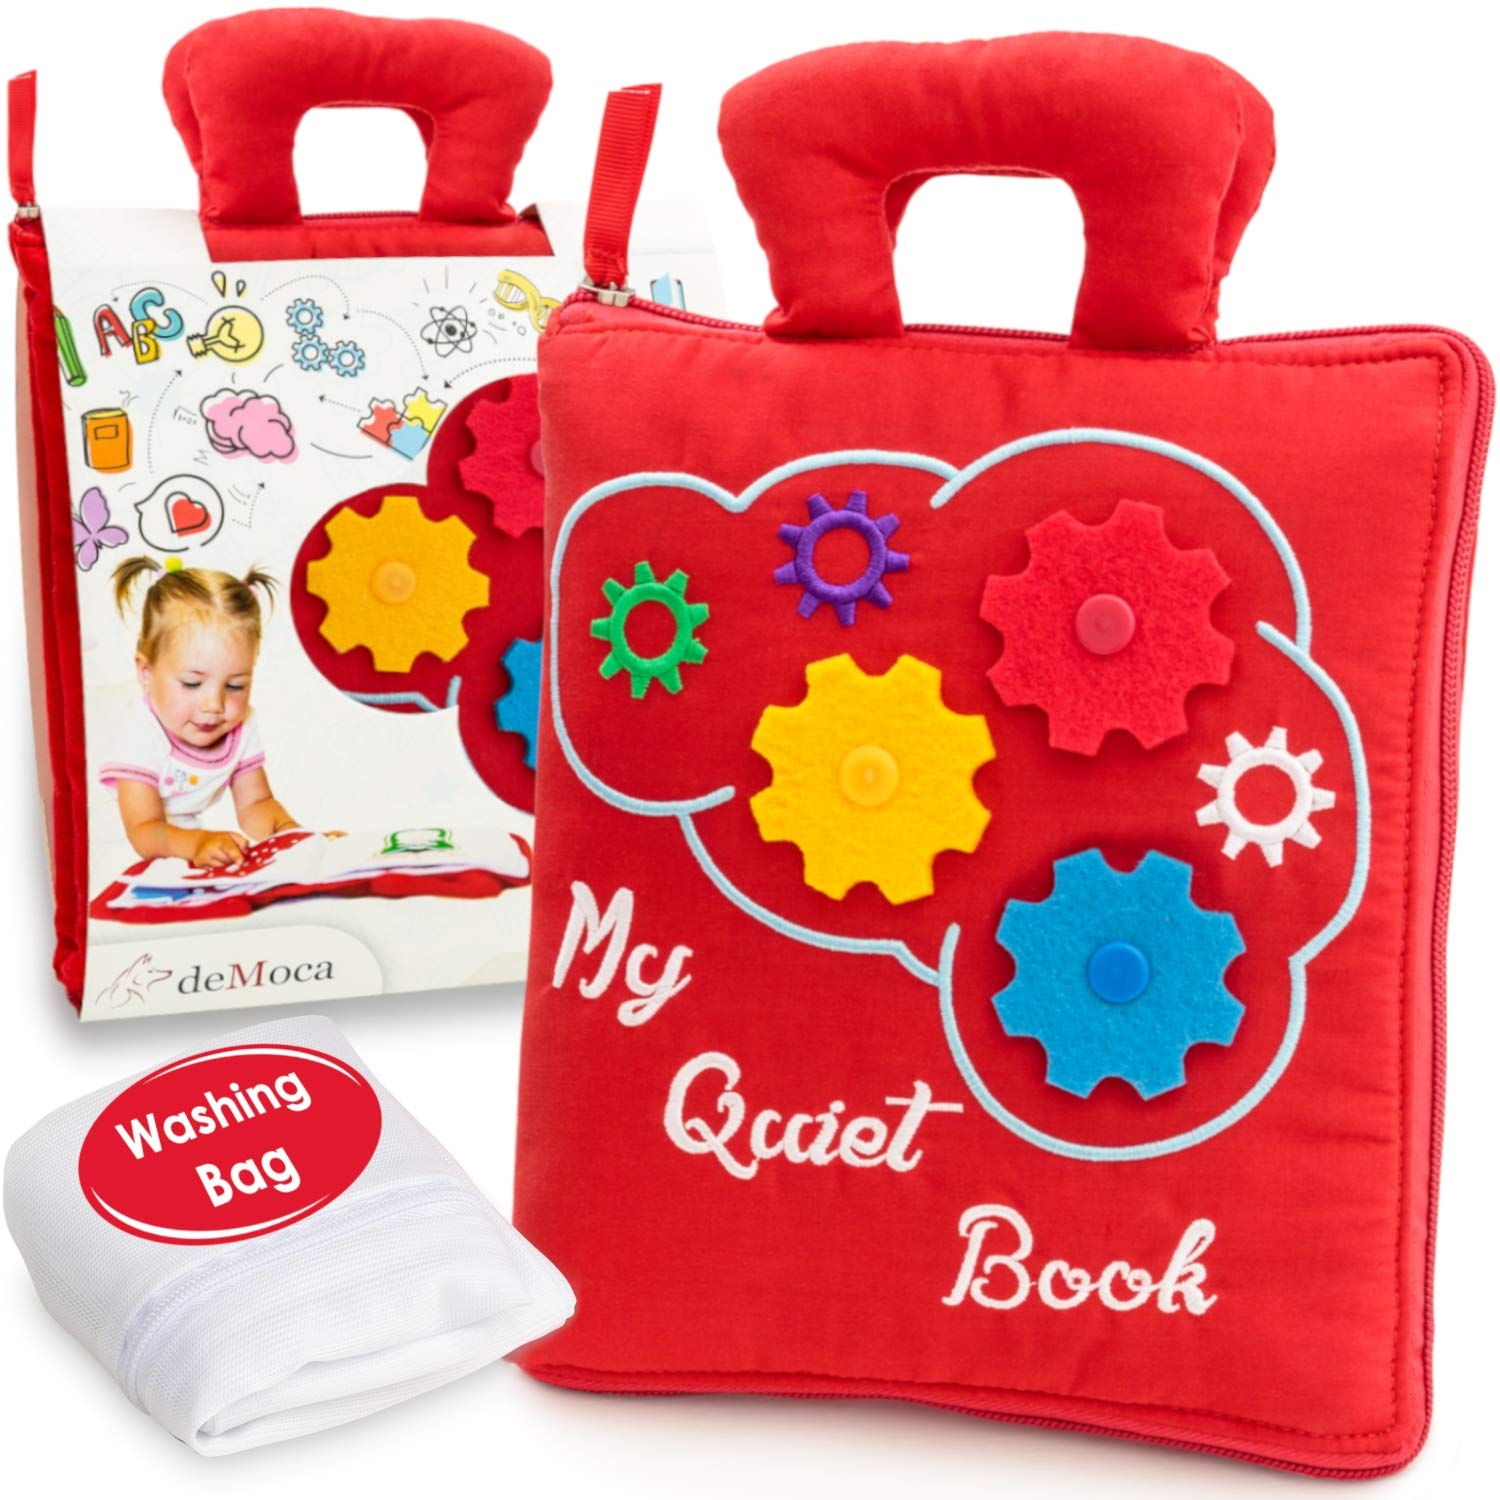 deMoca Quiet Book for Toddlers - Montessori Basic Skills Activity - Soft Travel Toy & Educational Busy Book for 2 3 4 Year Old Boys & Girls + Zipper Bag